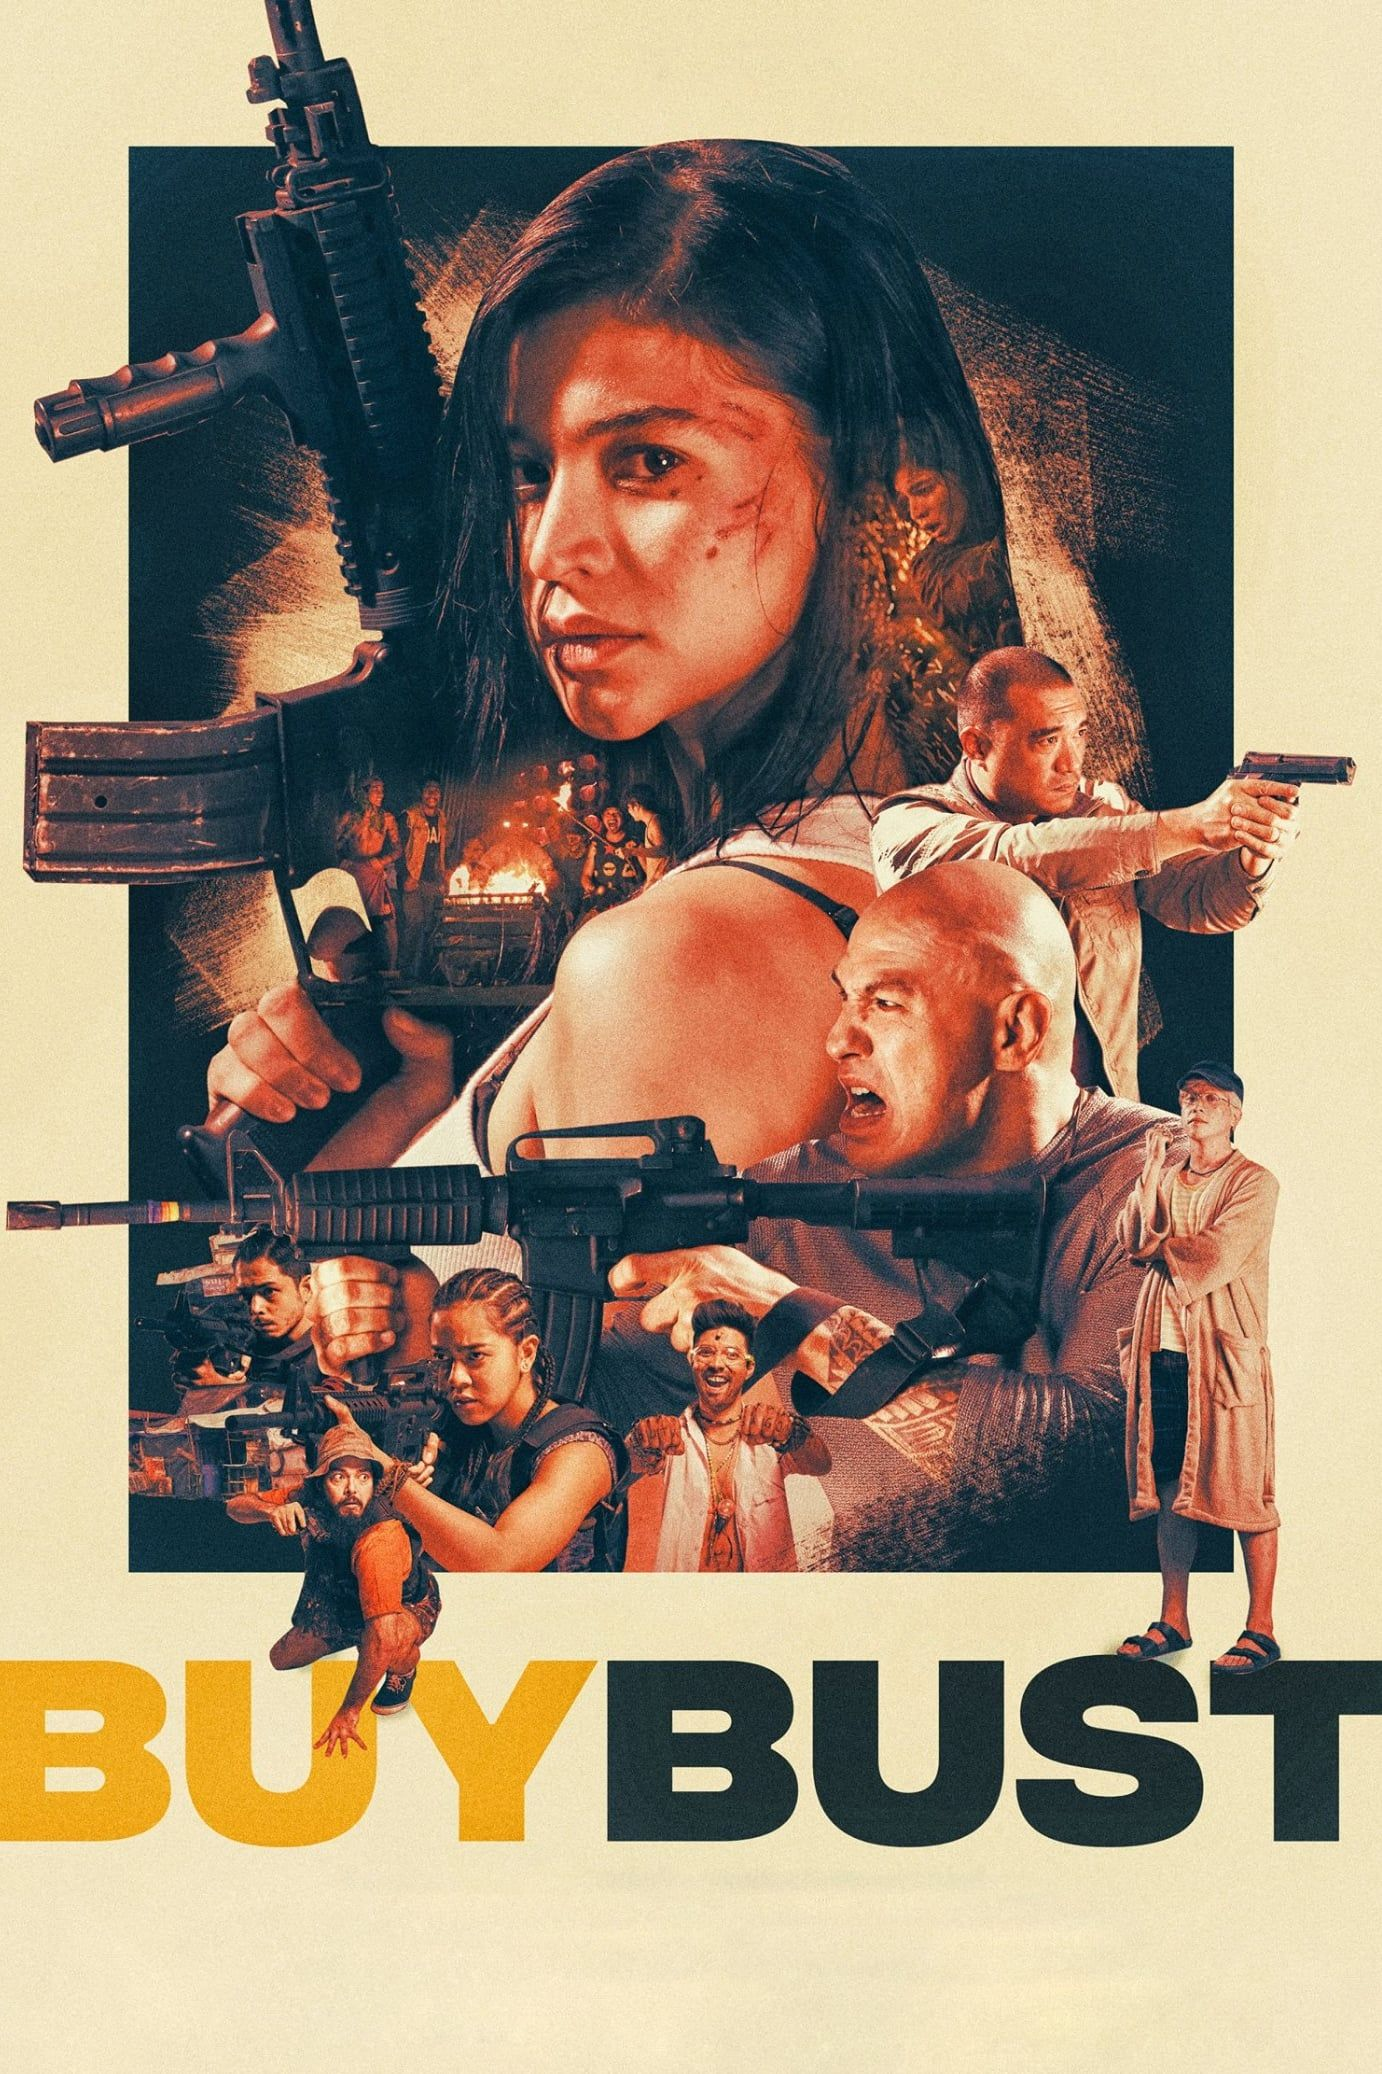 Hd 1080p Buybust Peliculacompleta En Espanol Latino Mega Videos Linea Espanol Full Movies Streaming Movies Movies